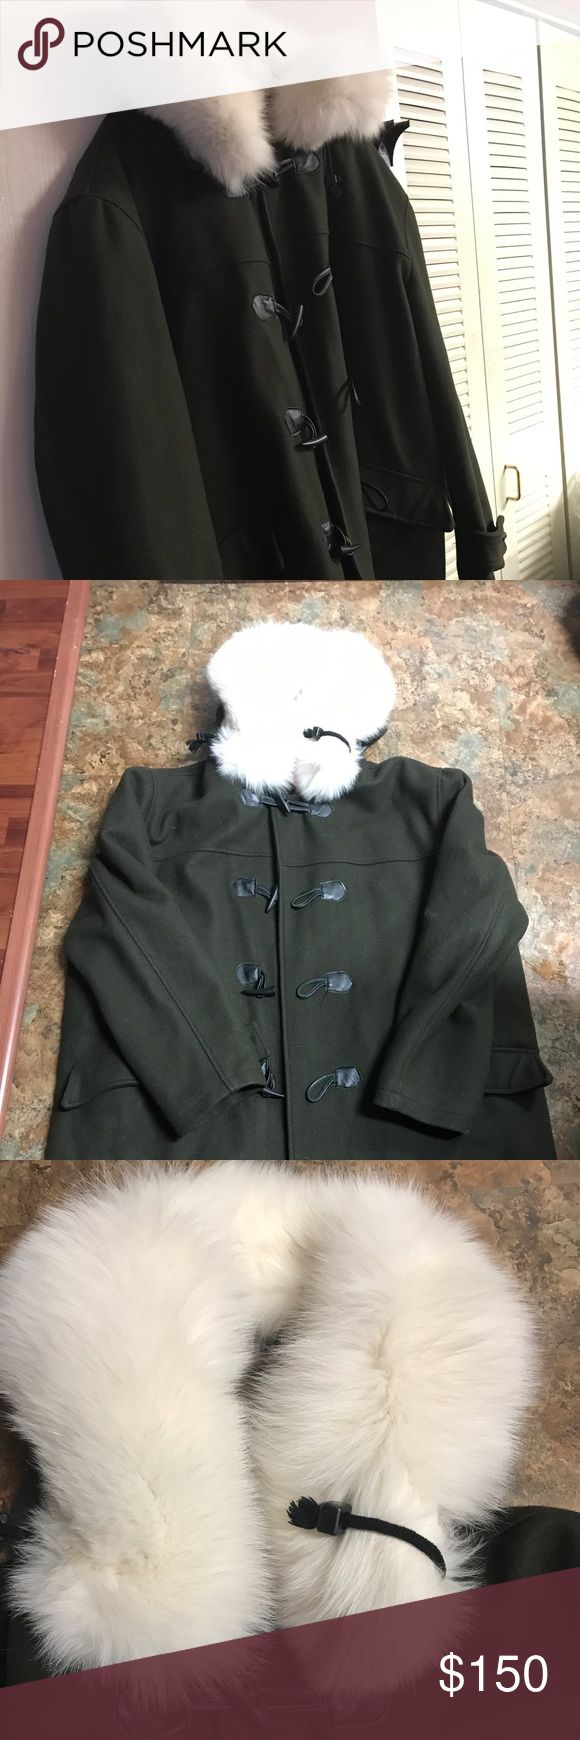 Men's Army Green Wool PeaCoat Gently use custom fur collar wool with wooden buttons Schott NYC Jackets & Coats Pea Coats